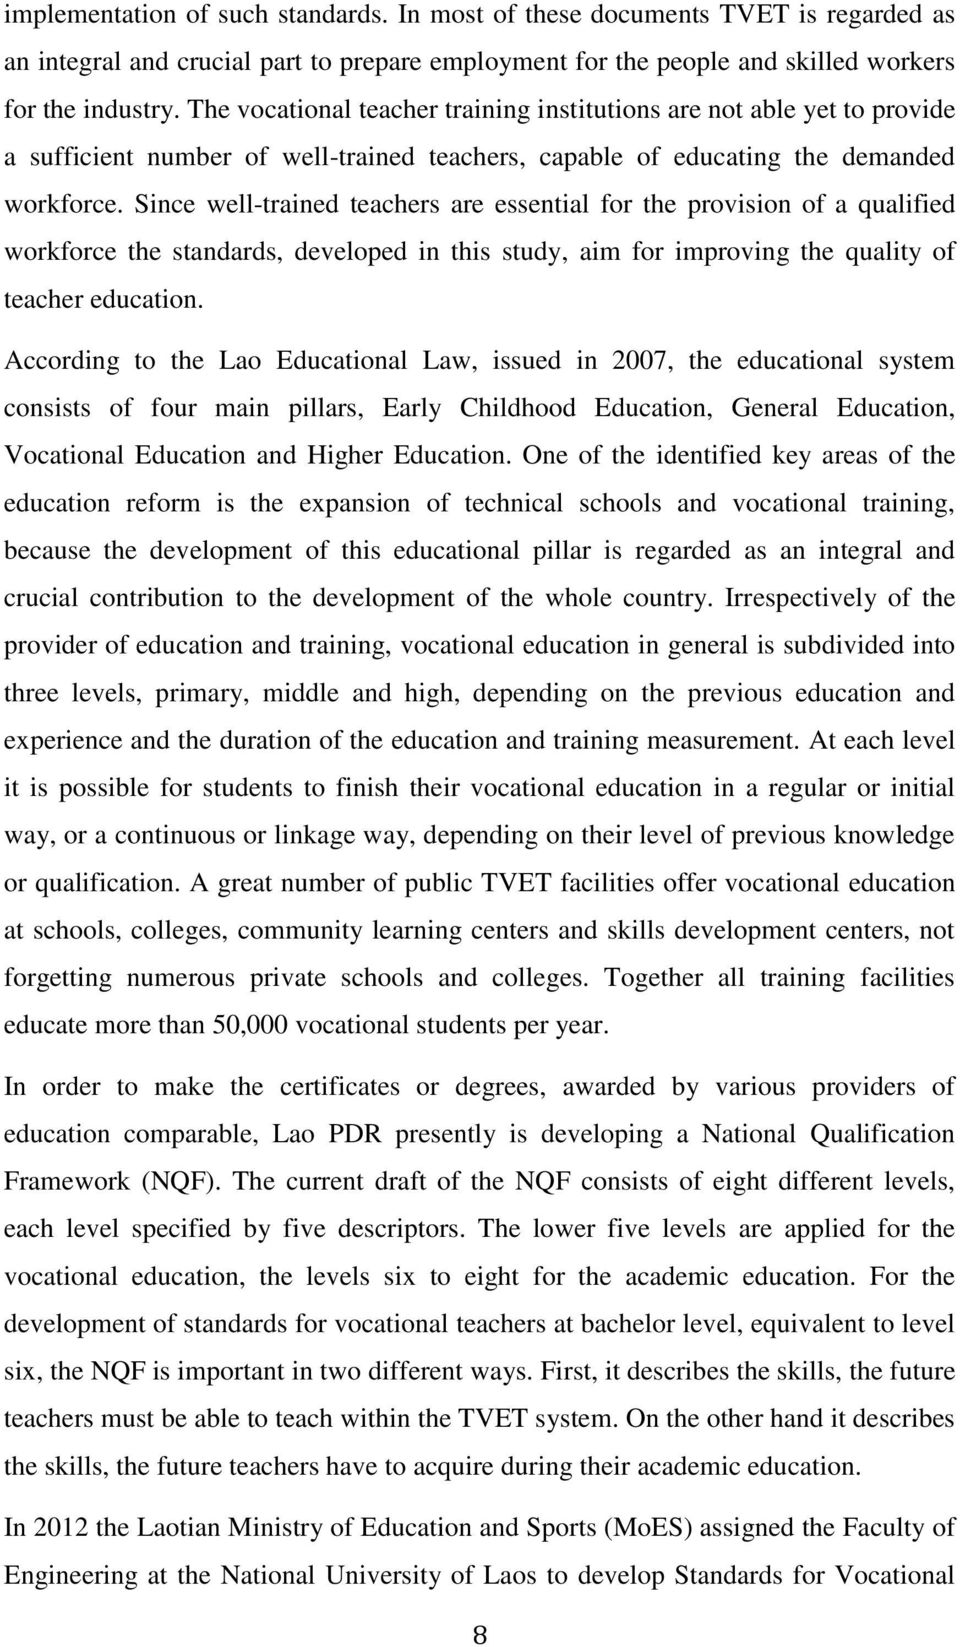 Since well-trained teachers are essential for the provision of a qualified workforce the standards, developed in this study, aim for improving the quality of teacher education.